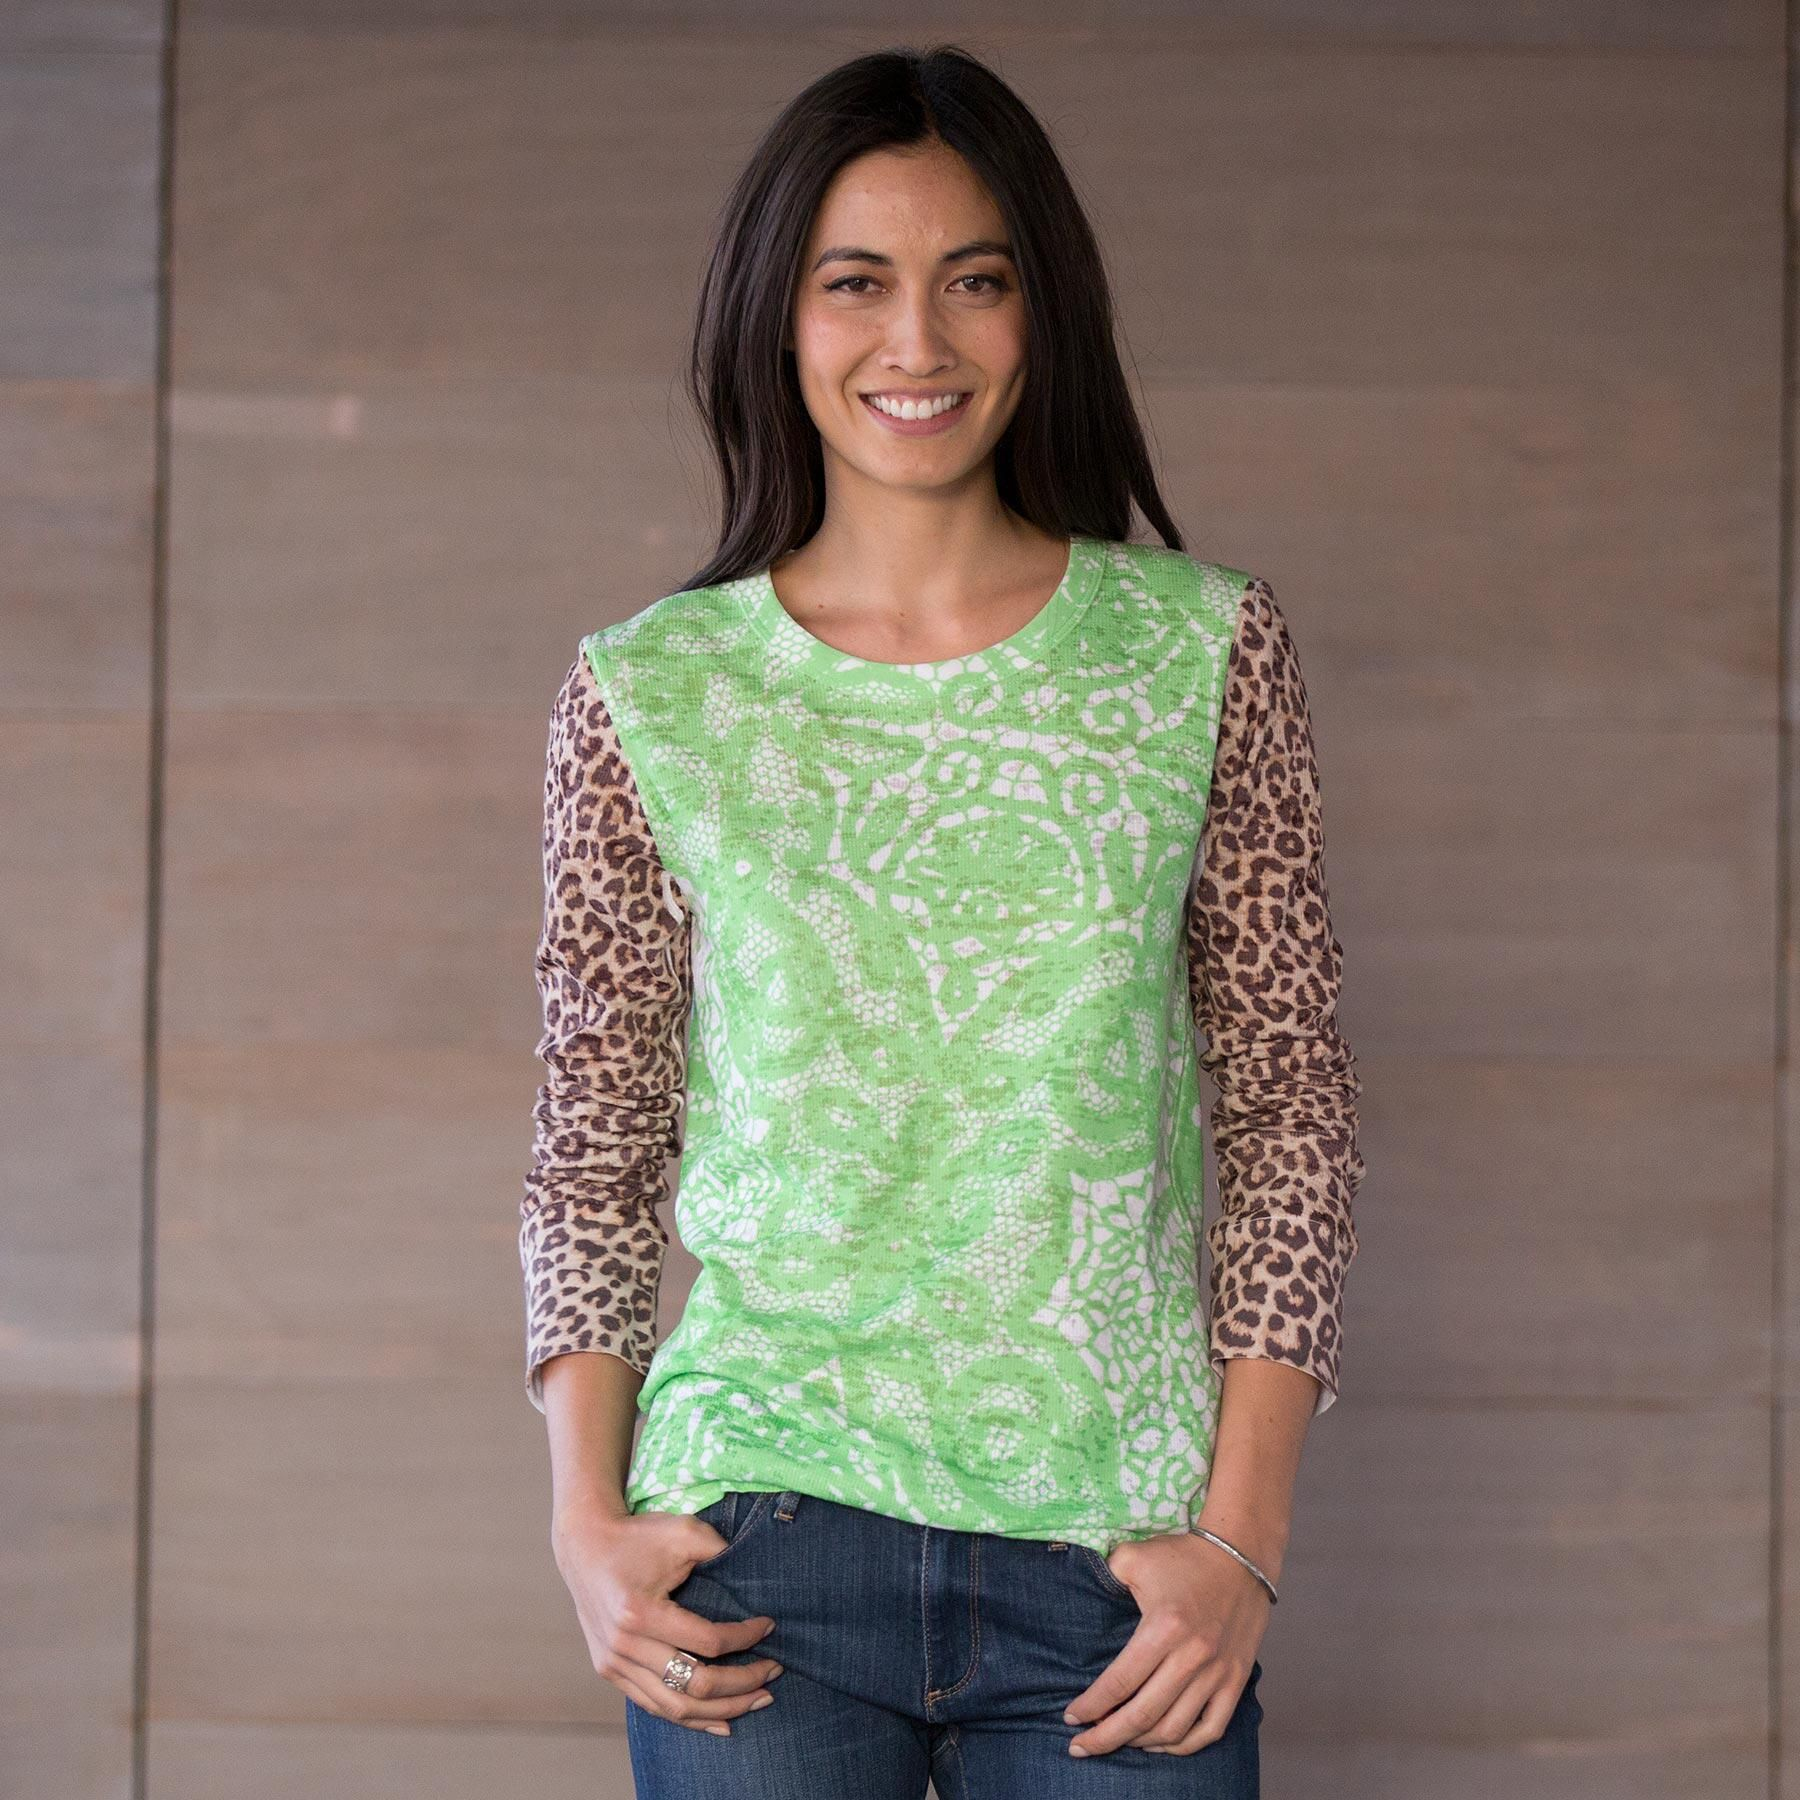 "RAINFOREST TEE -- Wear your wild side on your sleeve in our burnout tee of cool green shades in a delicate lace print. Cotton/polyester. Machine wash. USA. Exclusive. Sizes XS (2), S (4 to 6), M (8 to 10), L (12 to 14), XL (16). Approx. 26-1/2""L."